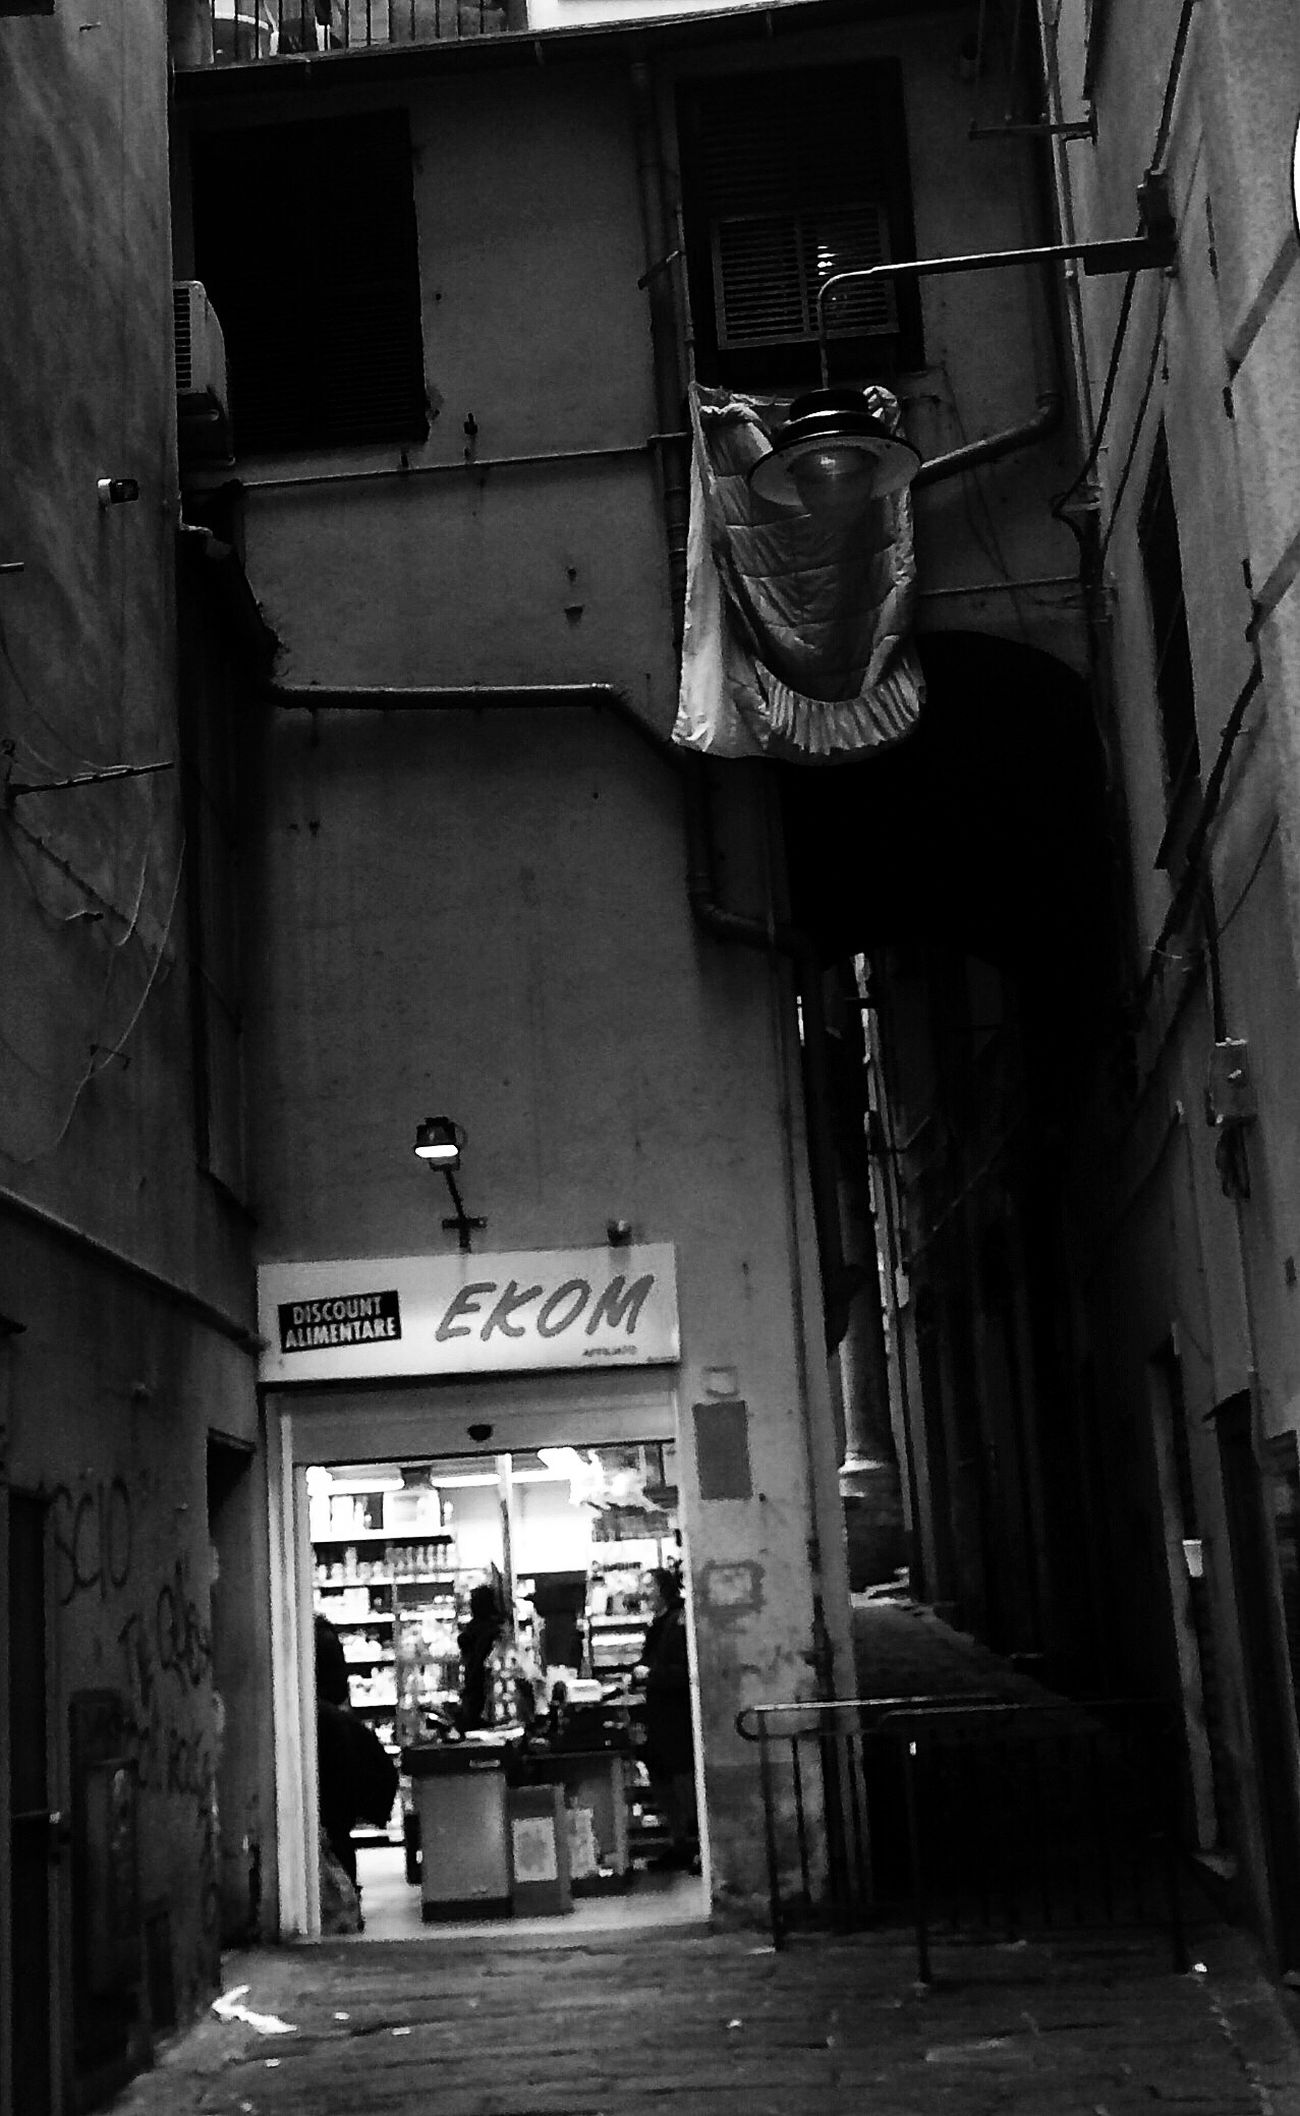 [minimarket] Built Structure Architecture Street Street Photography Monochrome Black And White Italy City Streetphoto_bw Black&white Liguria Genova Bnw Centrohistorico Black And White Photography Blackandwhite Photography Blancoynegro Instatagapp_instagood_iphonesia_photooftheday_instamood_igers_instagramhub_picoftheday_instadaily_bestoftheday_igdaily_webstagram_instagramers_statigram_igaddict_blackandwhite_iphoneartists_iphoneonly_jj_forum_iphonography_instagrammers_instaaddict_ Outdoors Instadaily Popular Photos Eye4photography  Instagood Instapic Hanging Out